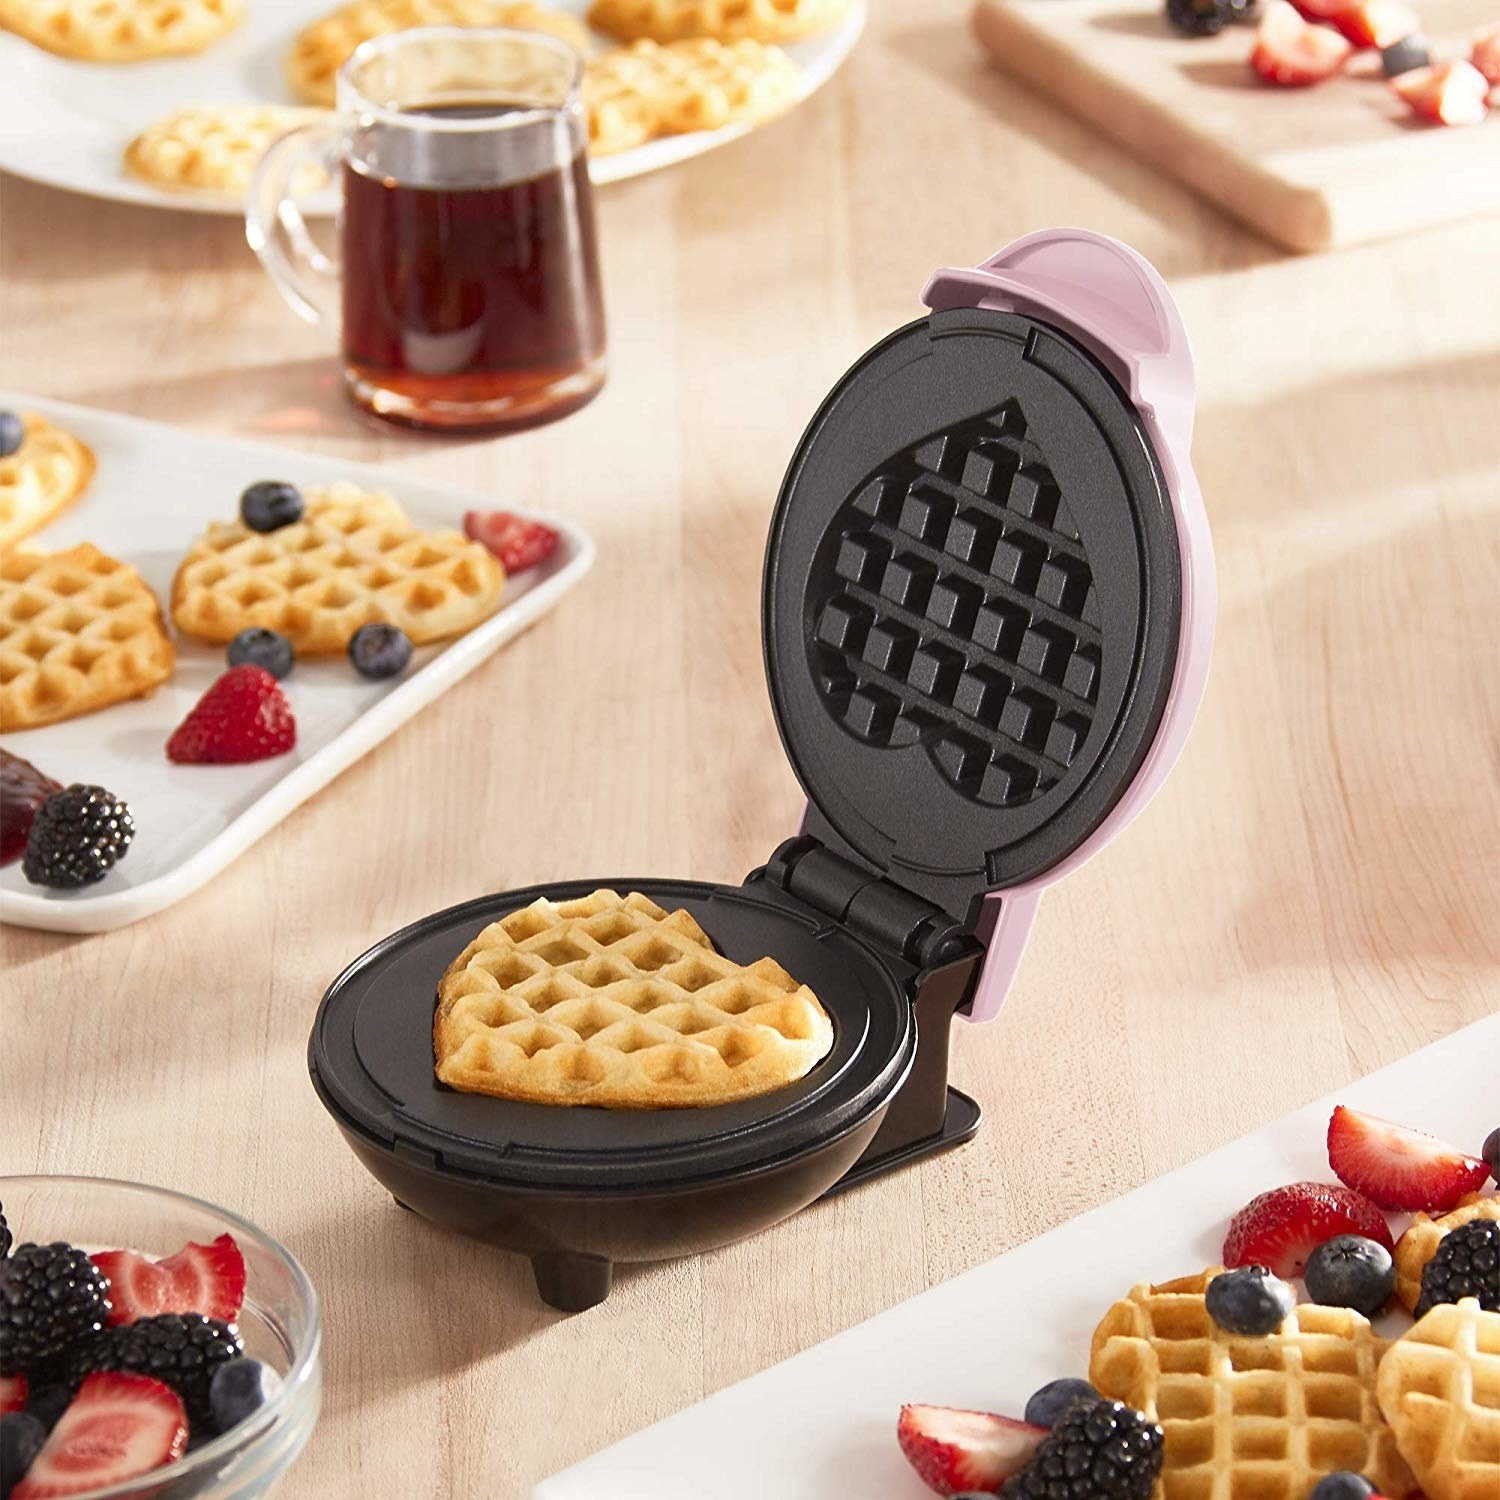 An open mini waffle maker with a fully cooked heart-shaped waffle inside